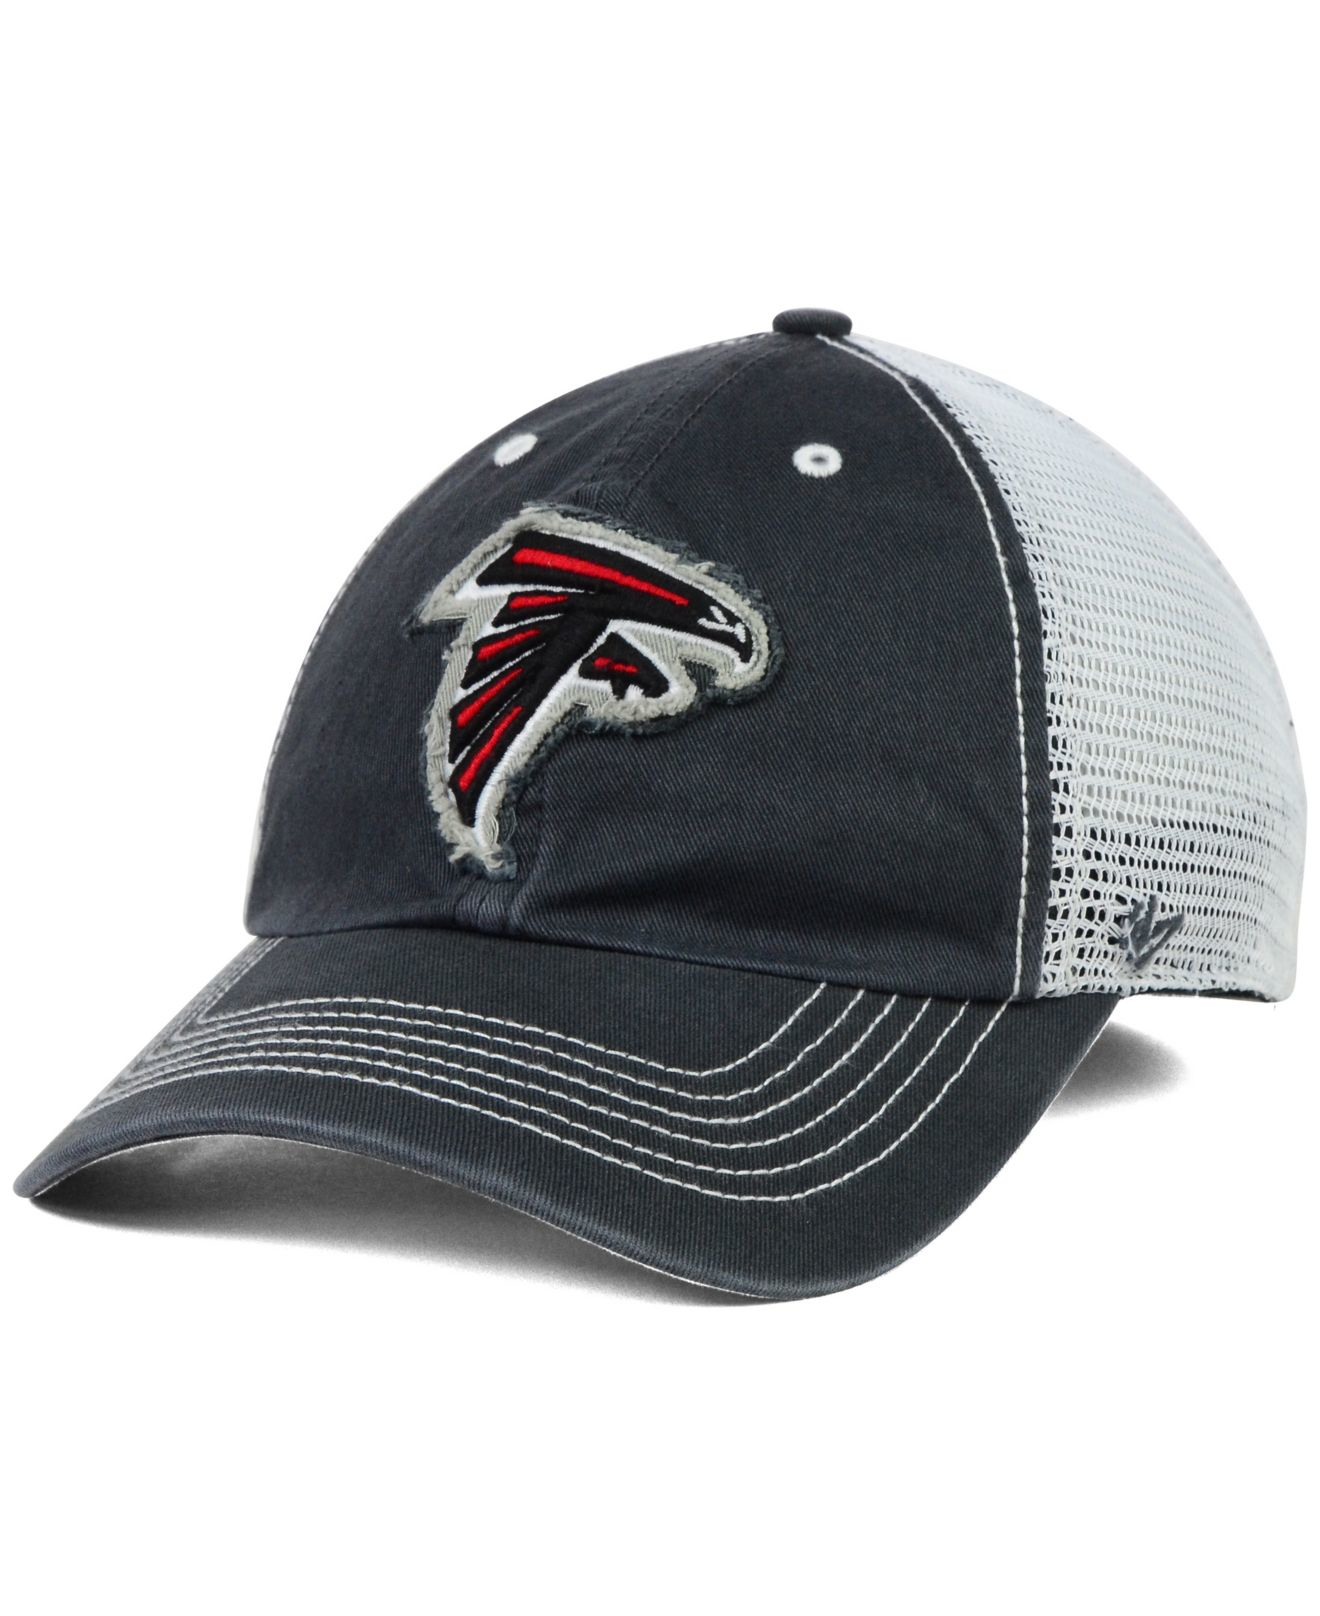 Lyst - 47 Brand Atlanta Falcons Taylor Closer Cap in Gray for Men 4f99f20ef